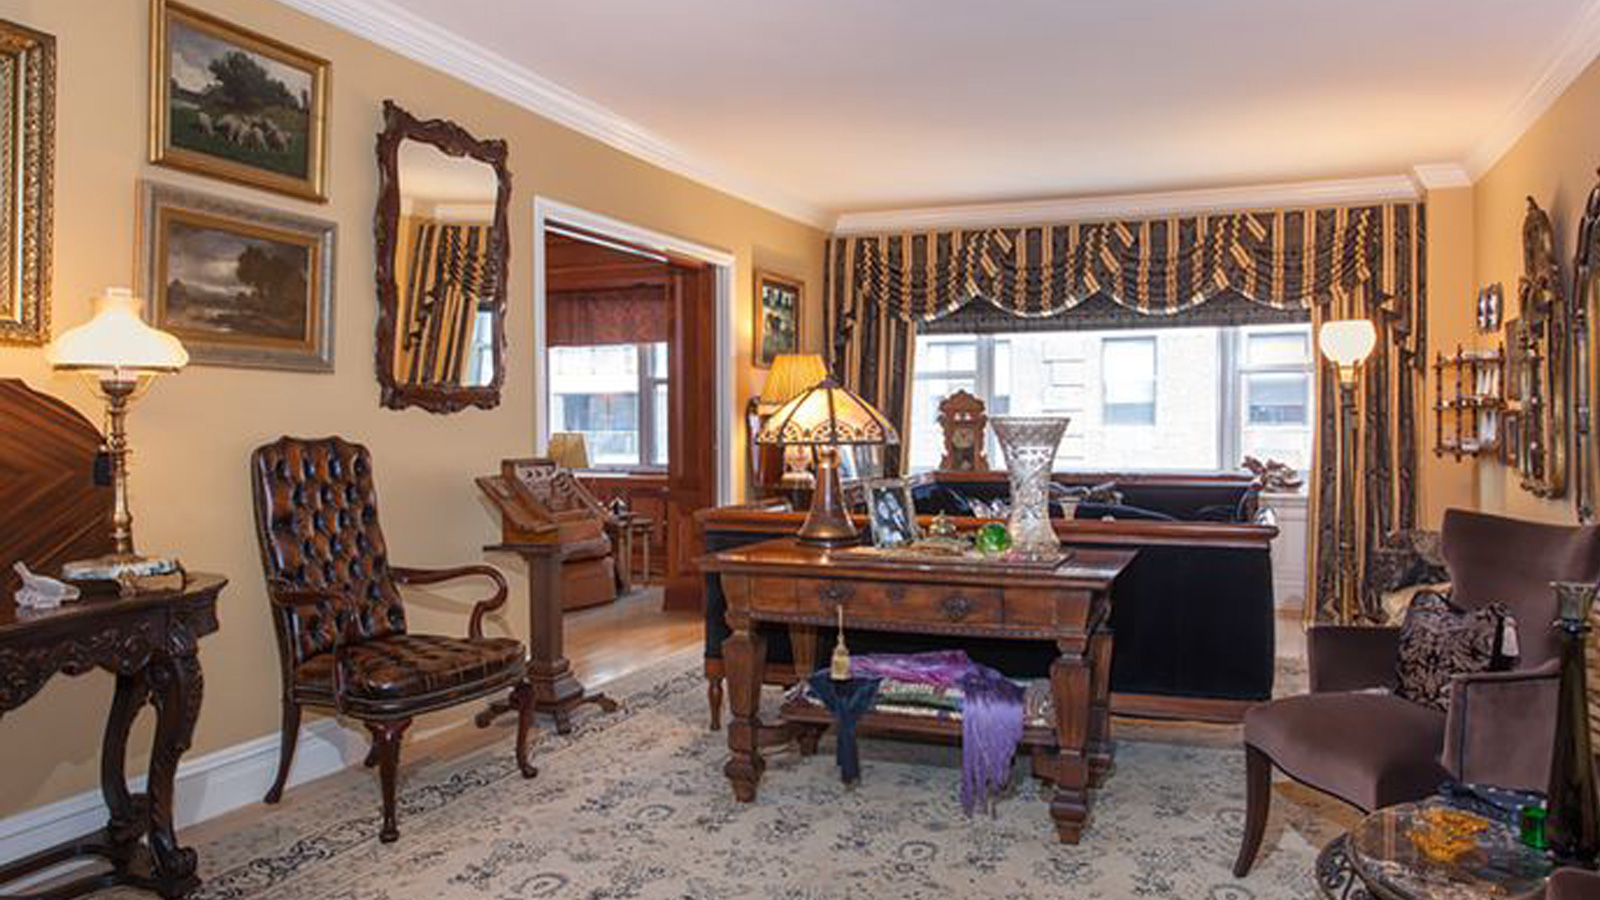 16 Sutton Place - NYC Apartments | CityRealty